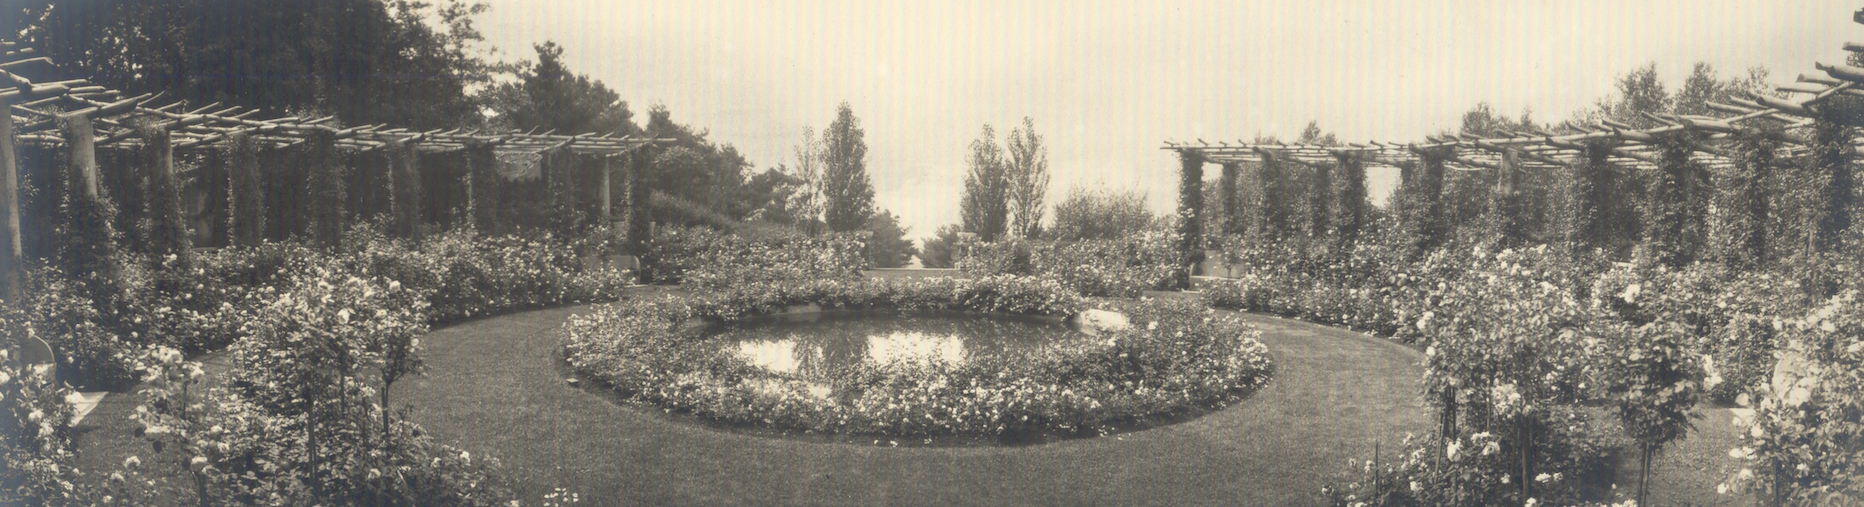 Vintage photo of the Rose Garden, circa 1915. Image courtesy of the Trustees of Reservations, Archives & Research Center